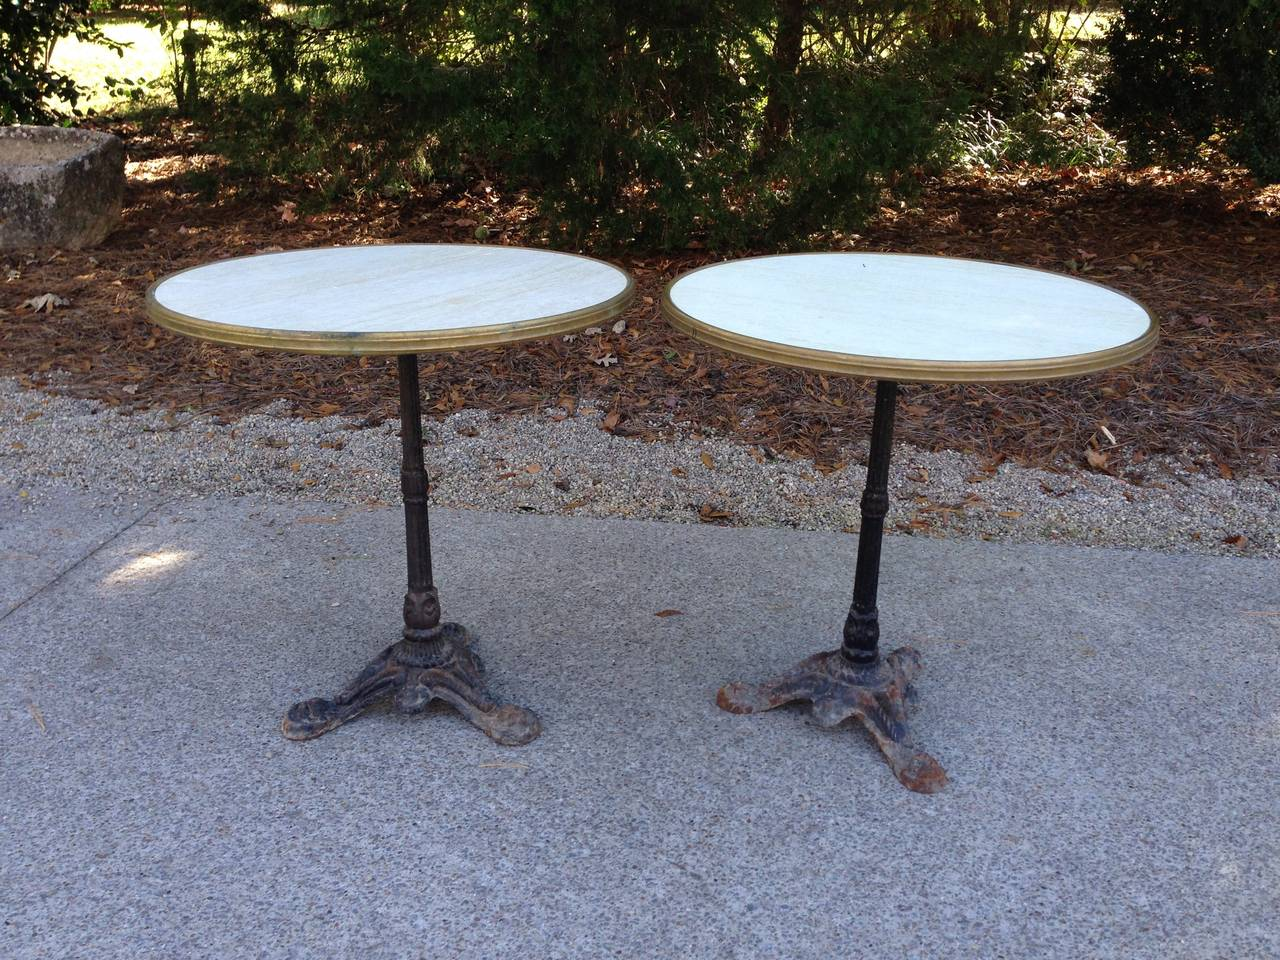 Pair of French bistro tables with faux marble tops,  brass rims and beautiful patinas on the black painted iron bases. Bases date to early 1920's. Priced individually and may be purchased separately.